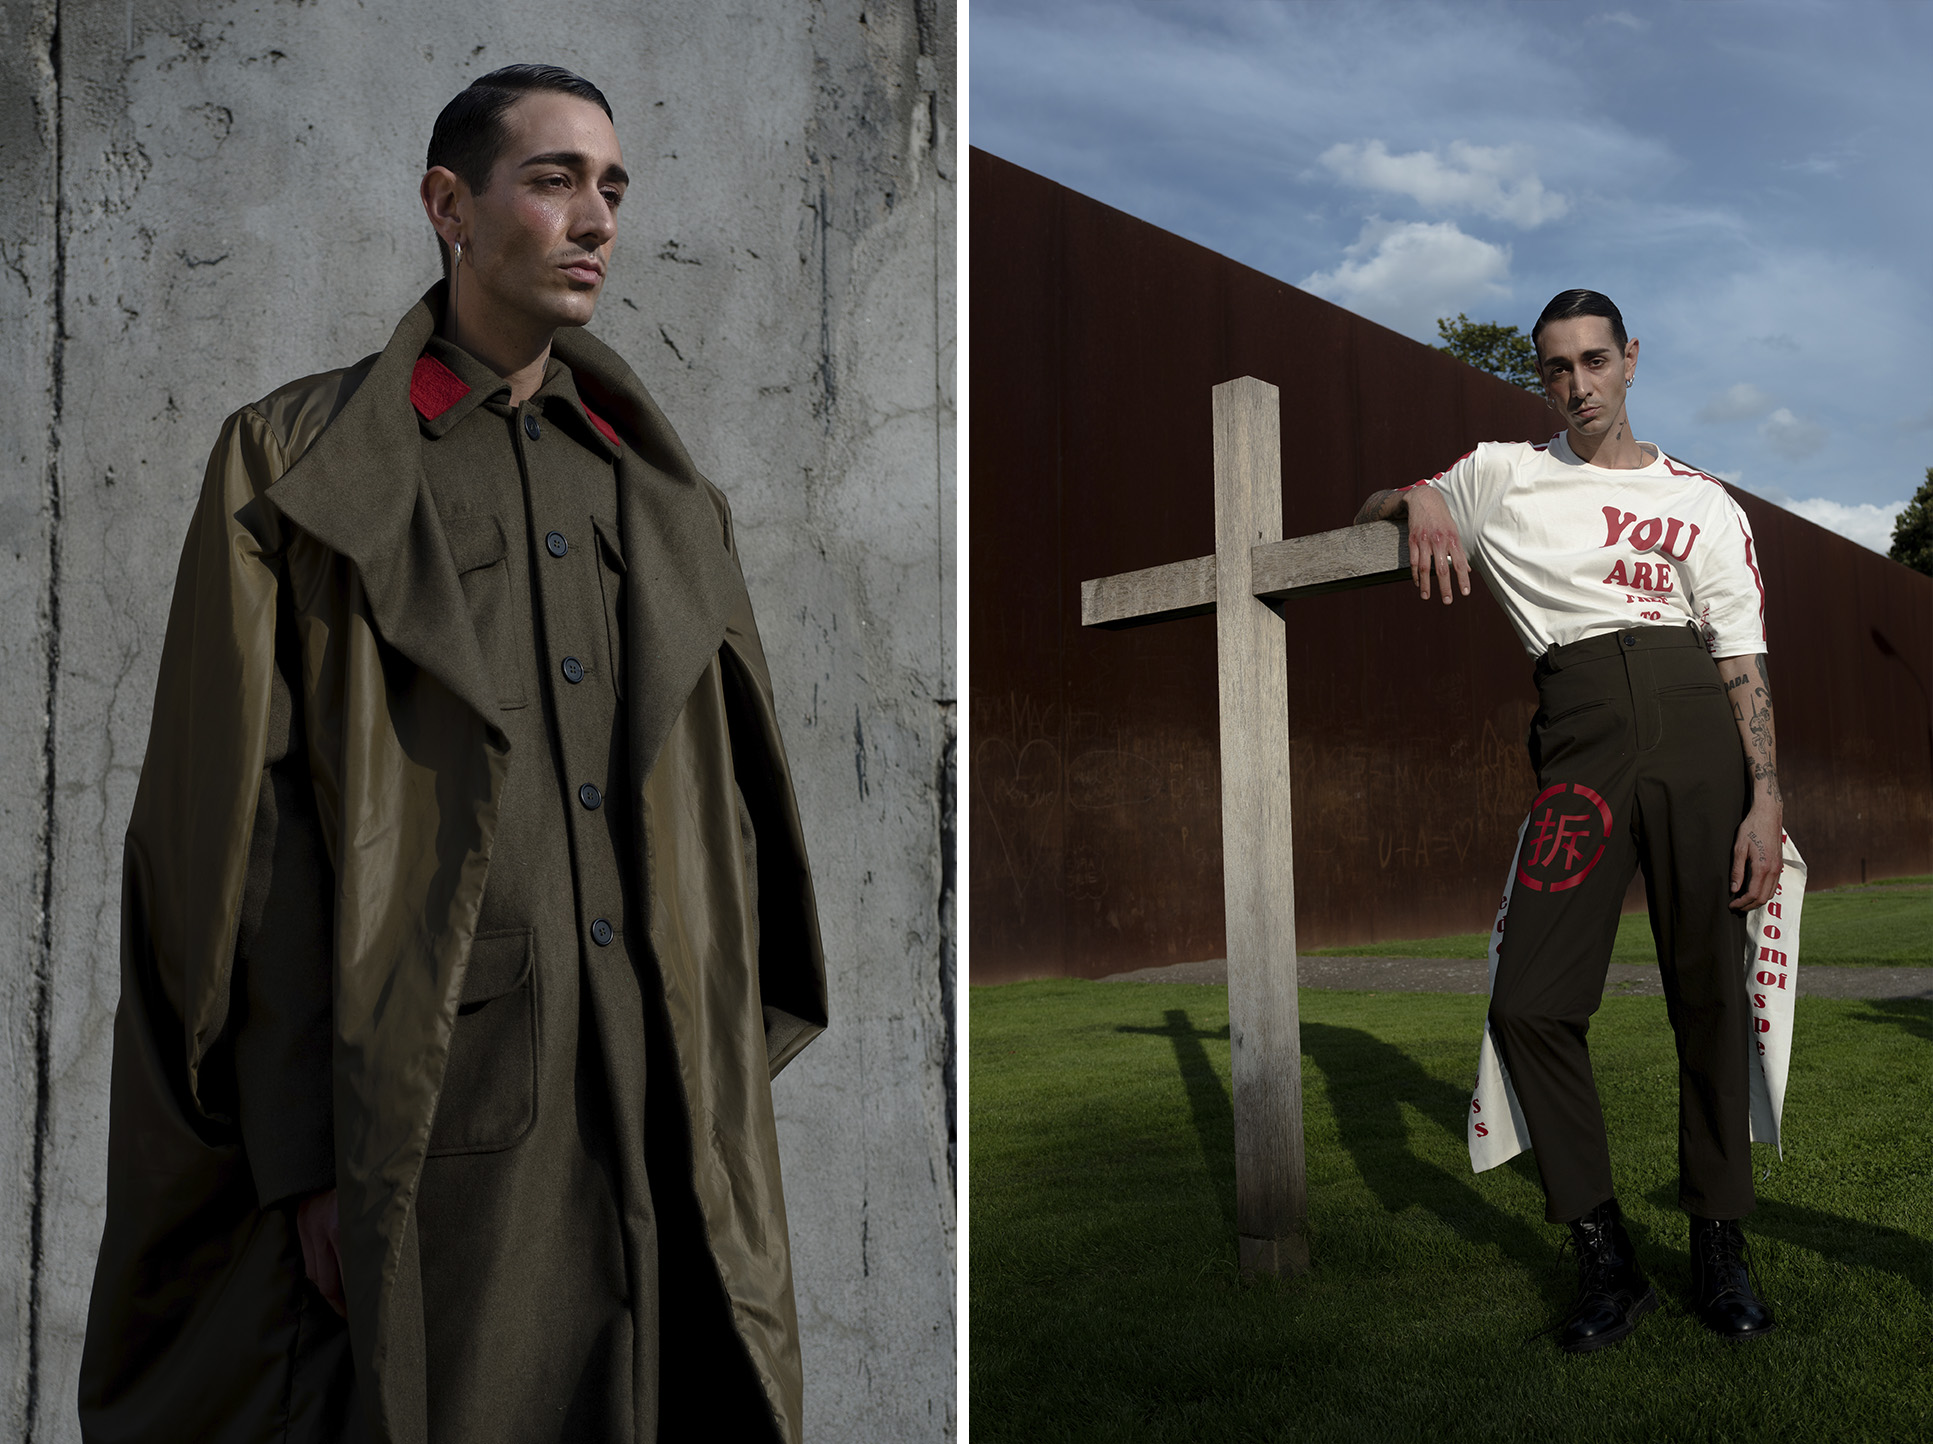 daniel peace kaltblut editorial menswear photography